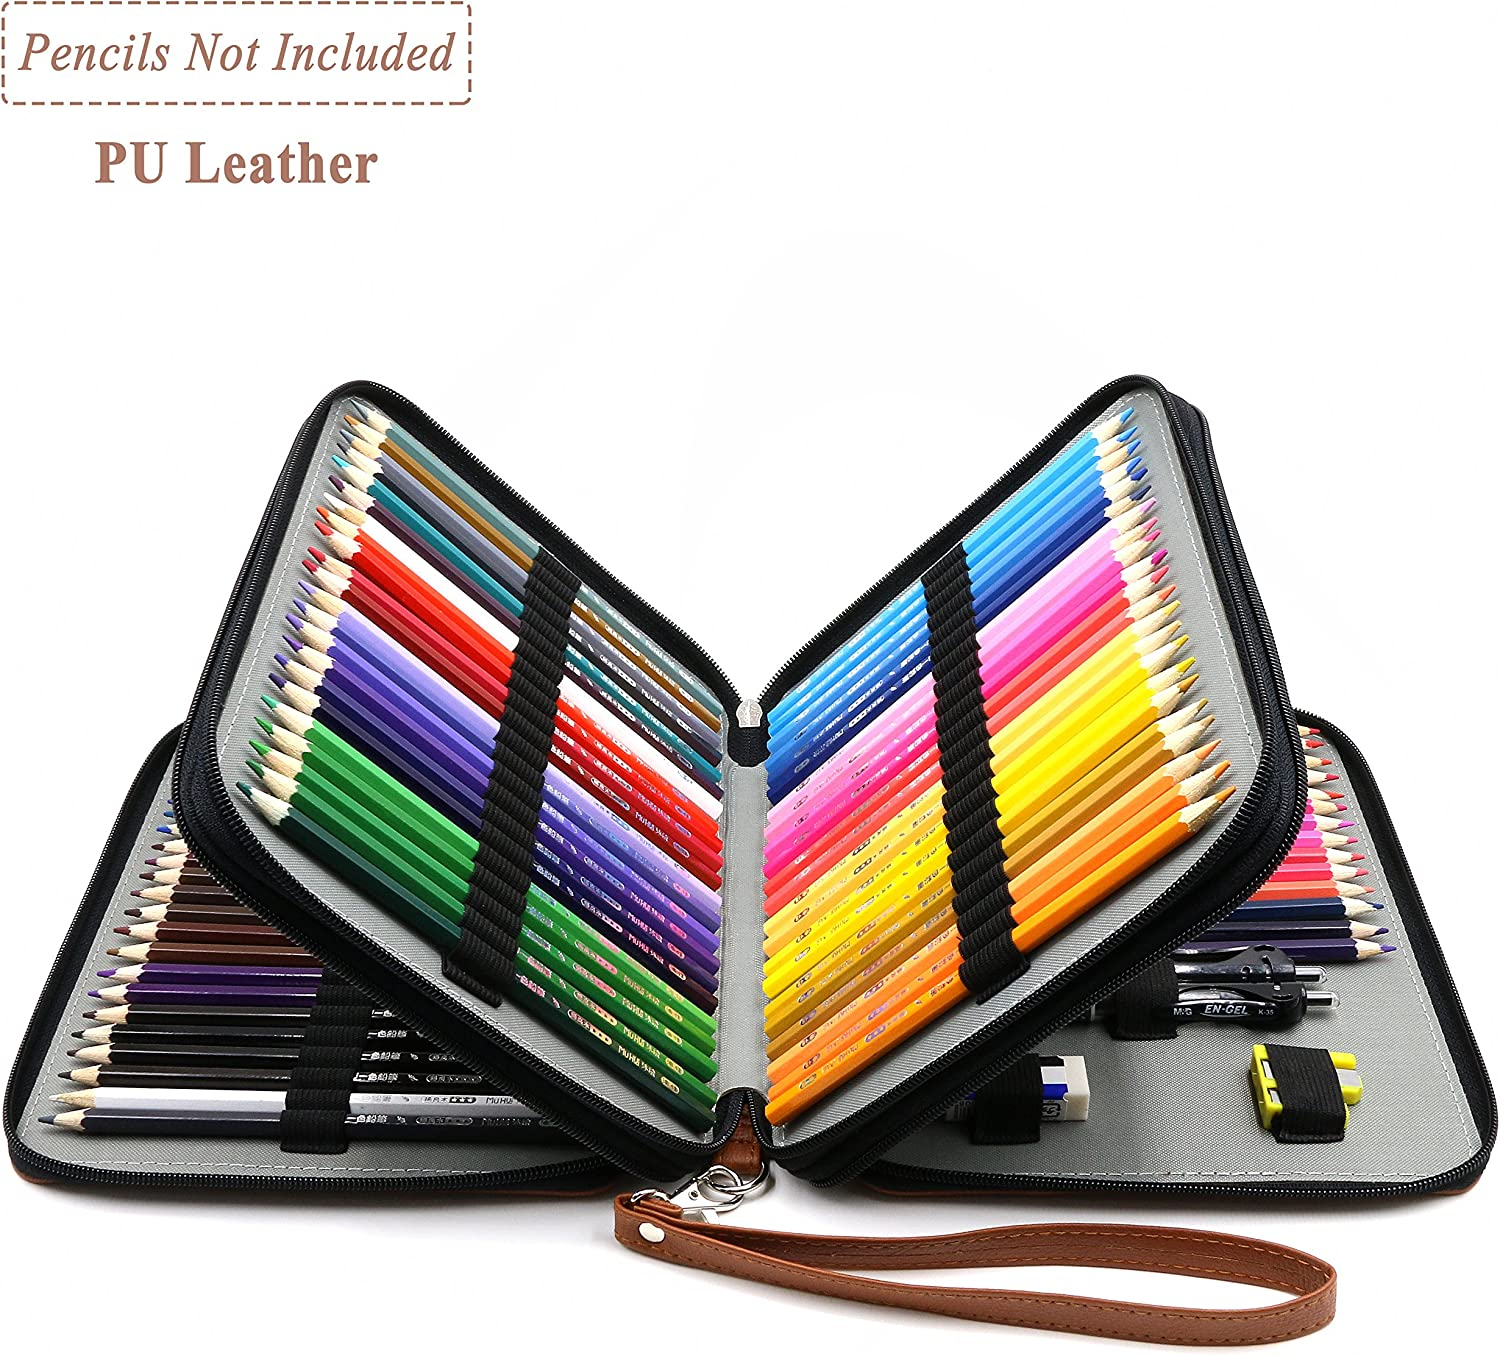 Brown Crayola Colored Pencils YOUSHARES 120 Slots Pencil Case Marco Pens and Makeup Brush PU Leather Handy Multi-Layer Large Zipper Pen Bag with Handle Strap for Prismacolor Watercolor Pencils